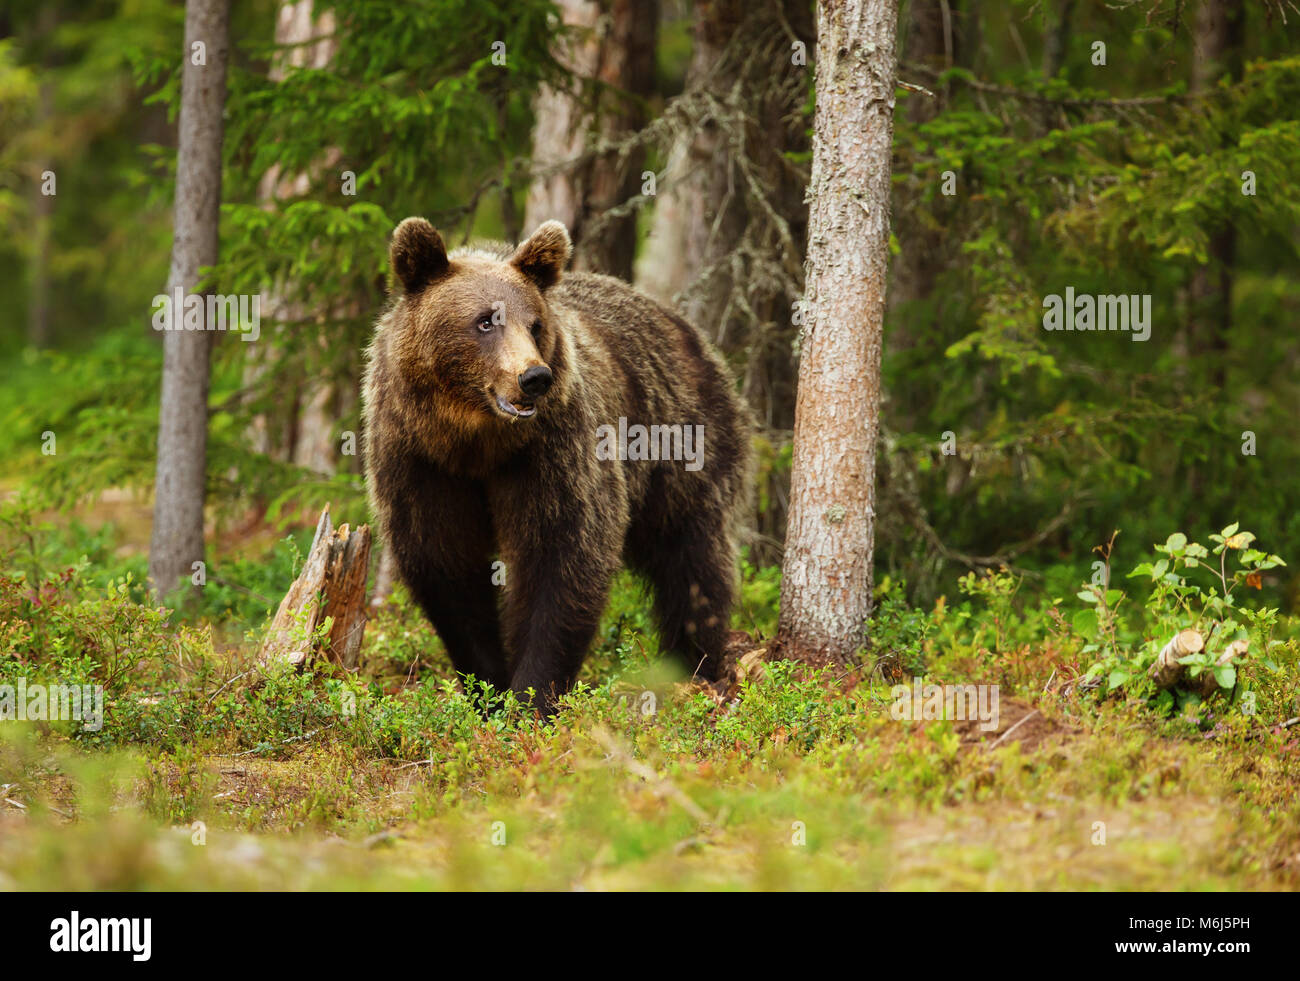 European brown bear (ursos arctos) male in boreal forest, Finland. - Stock Image